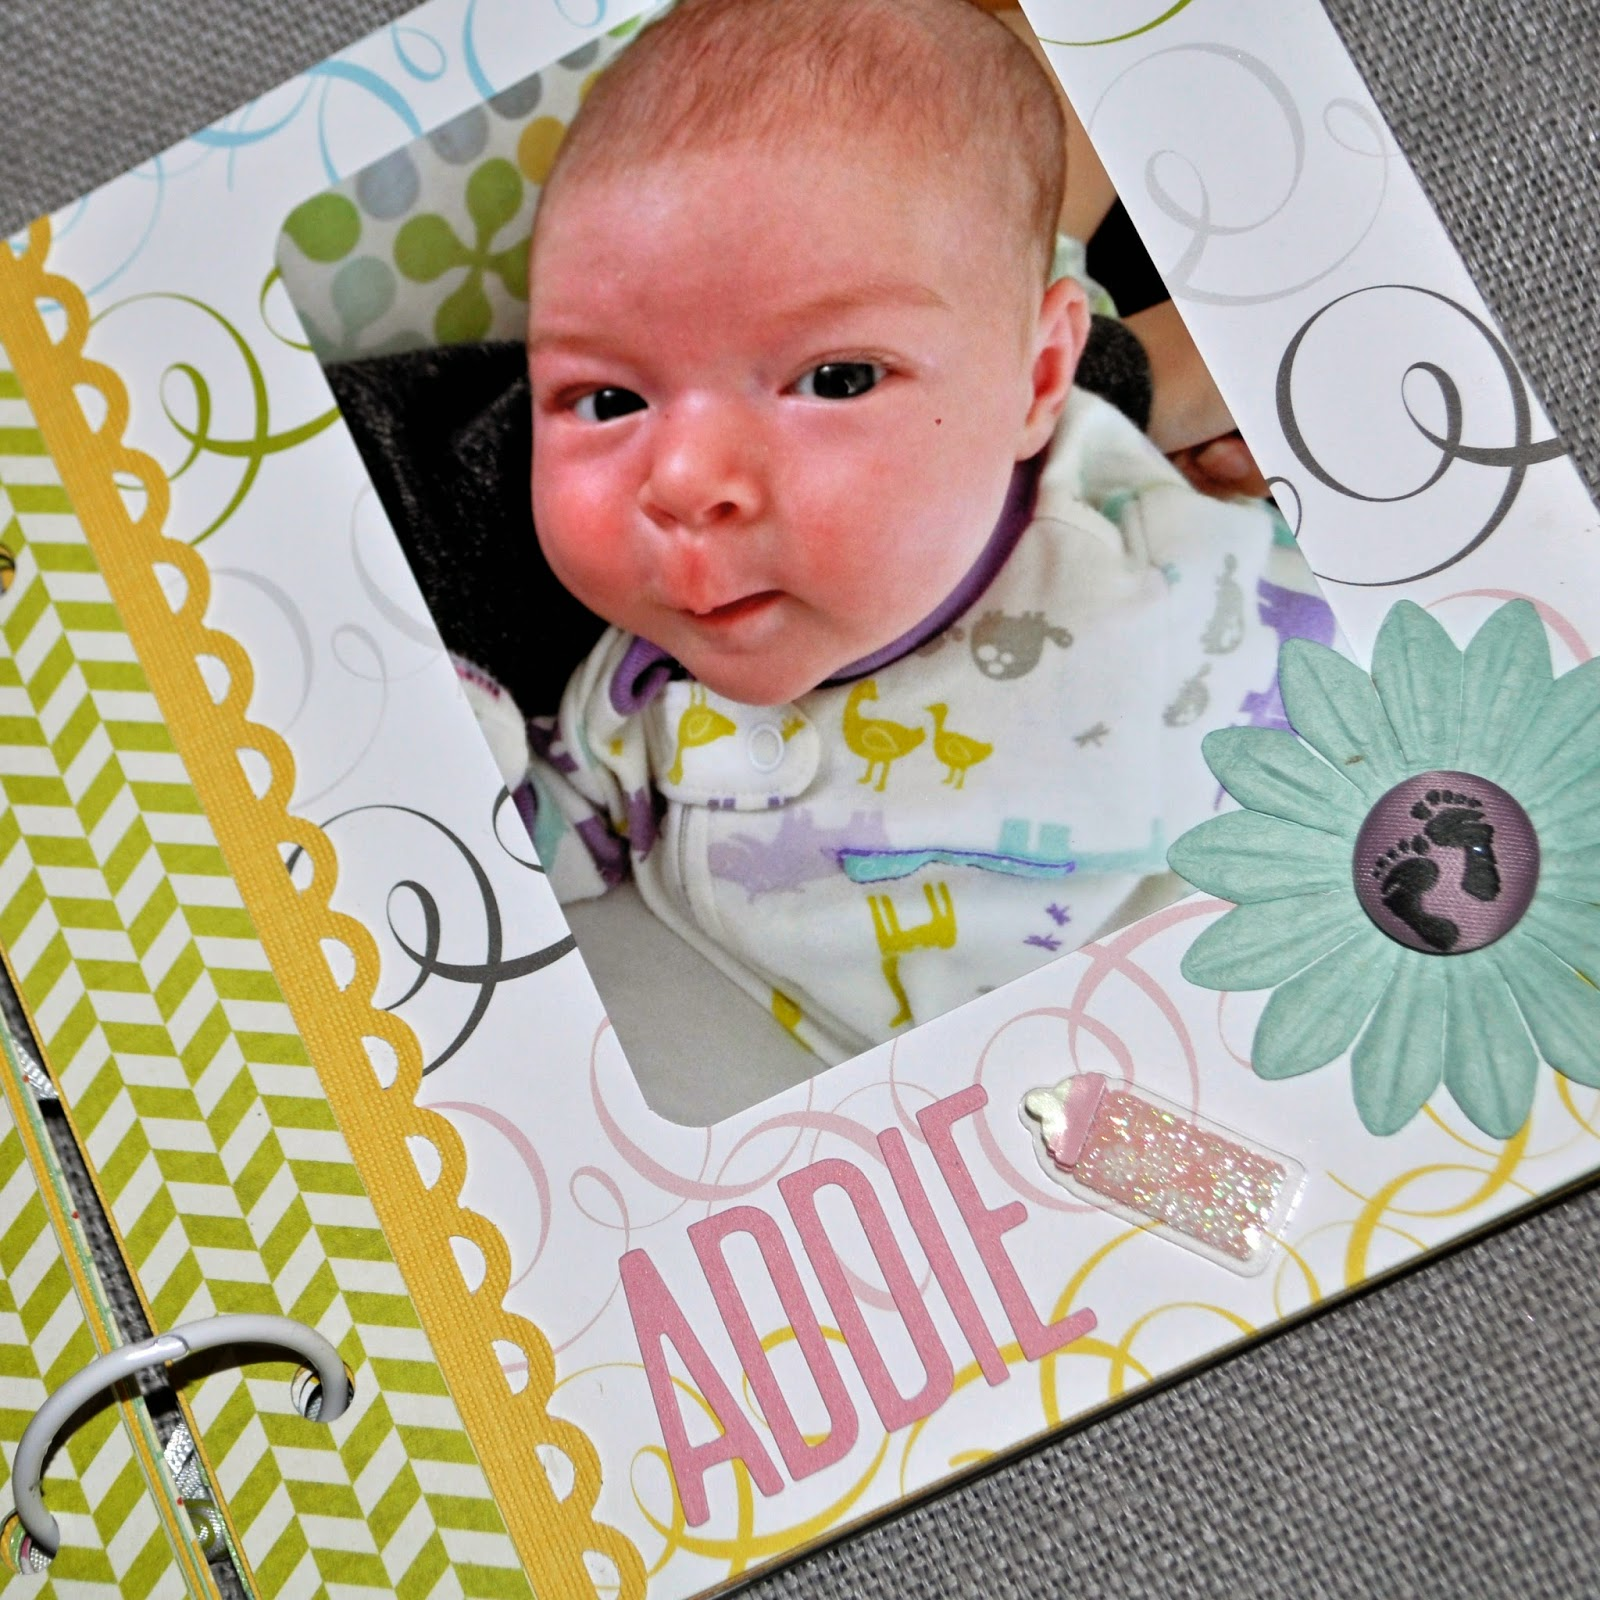 sweet baby brag book for grandmother grandma grams green blue yellow pink purple grey unisex boy girl card stock patterned paper first year month monthly pre made mini scrapbook album 6x6